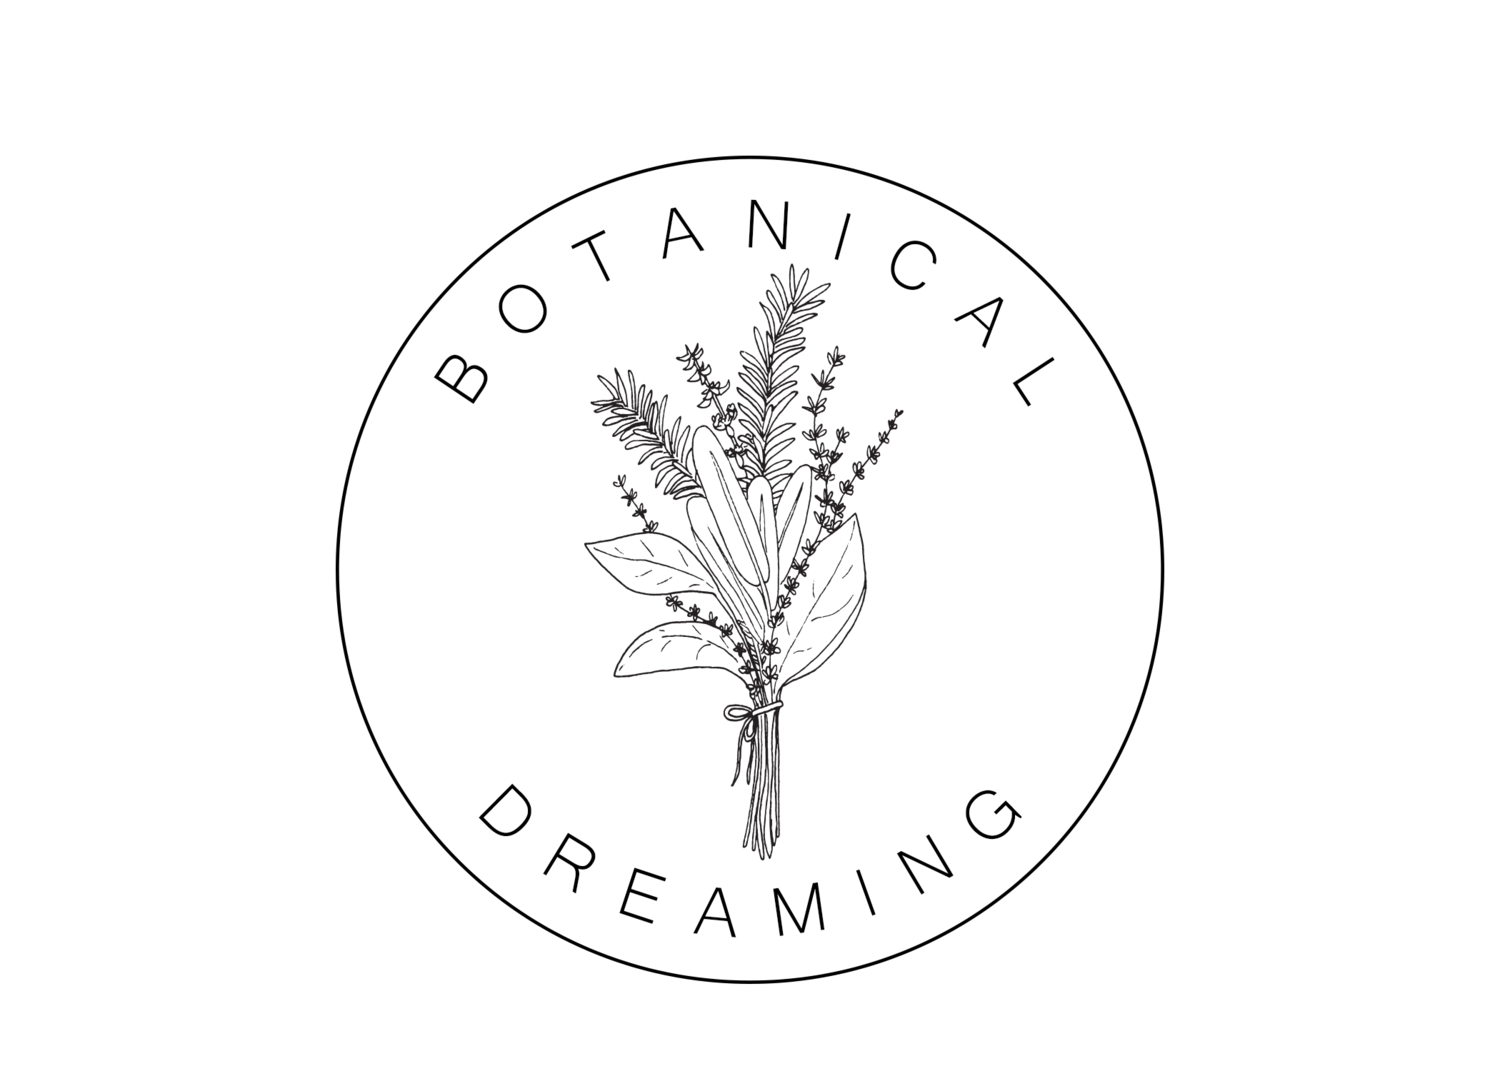 Botanical Dreaming